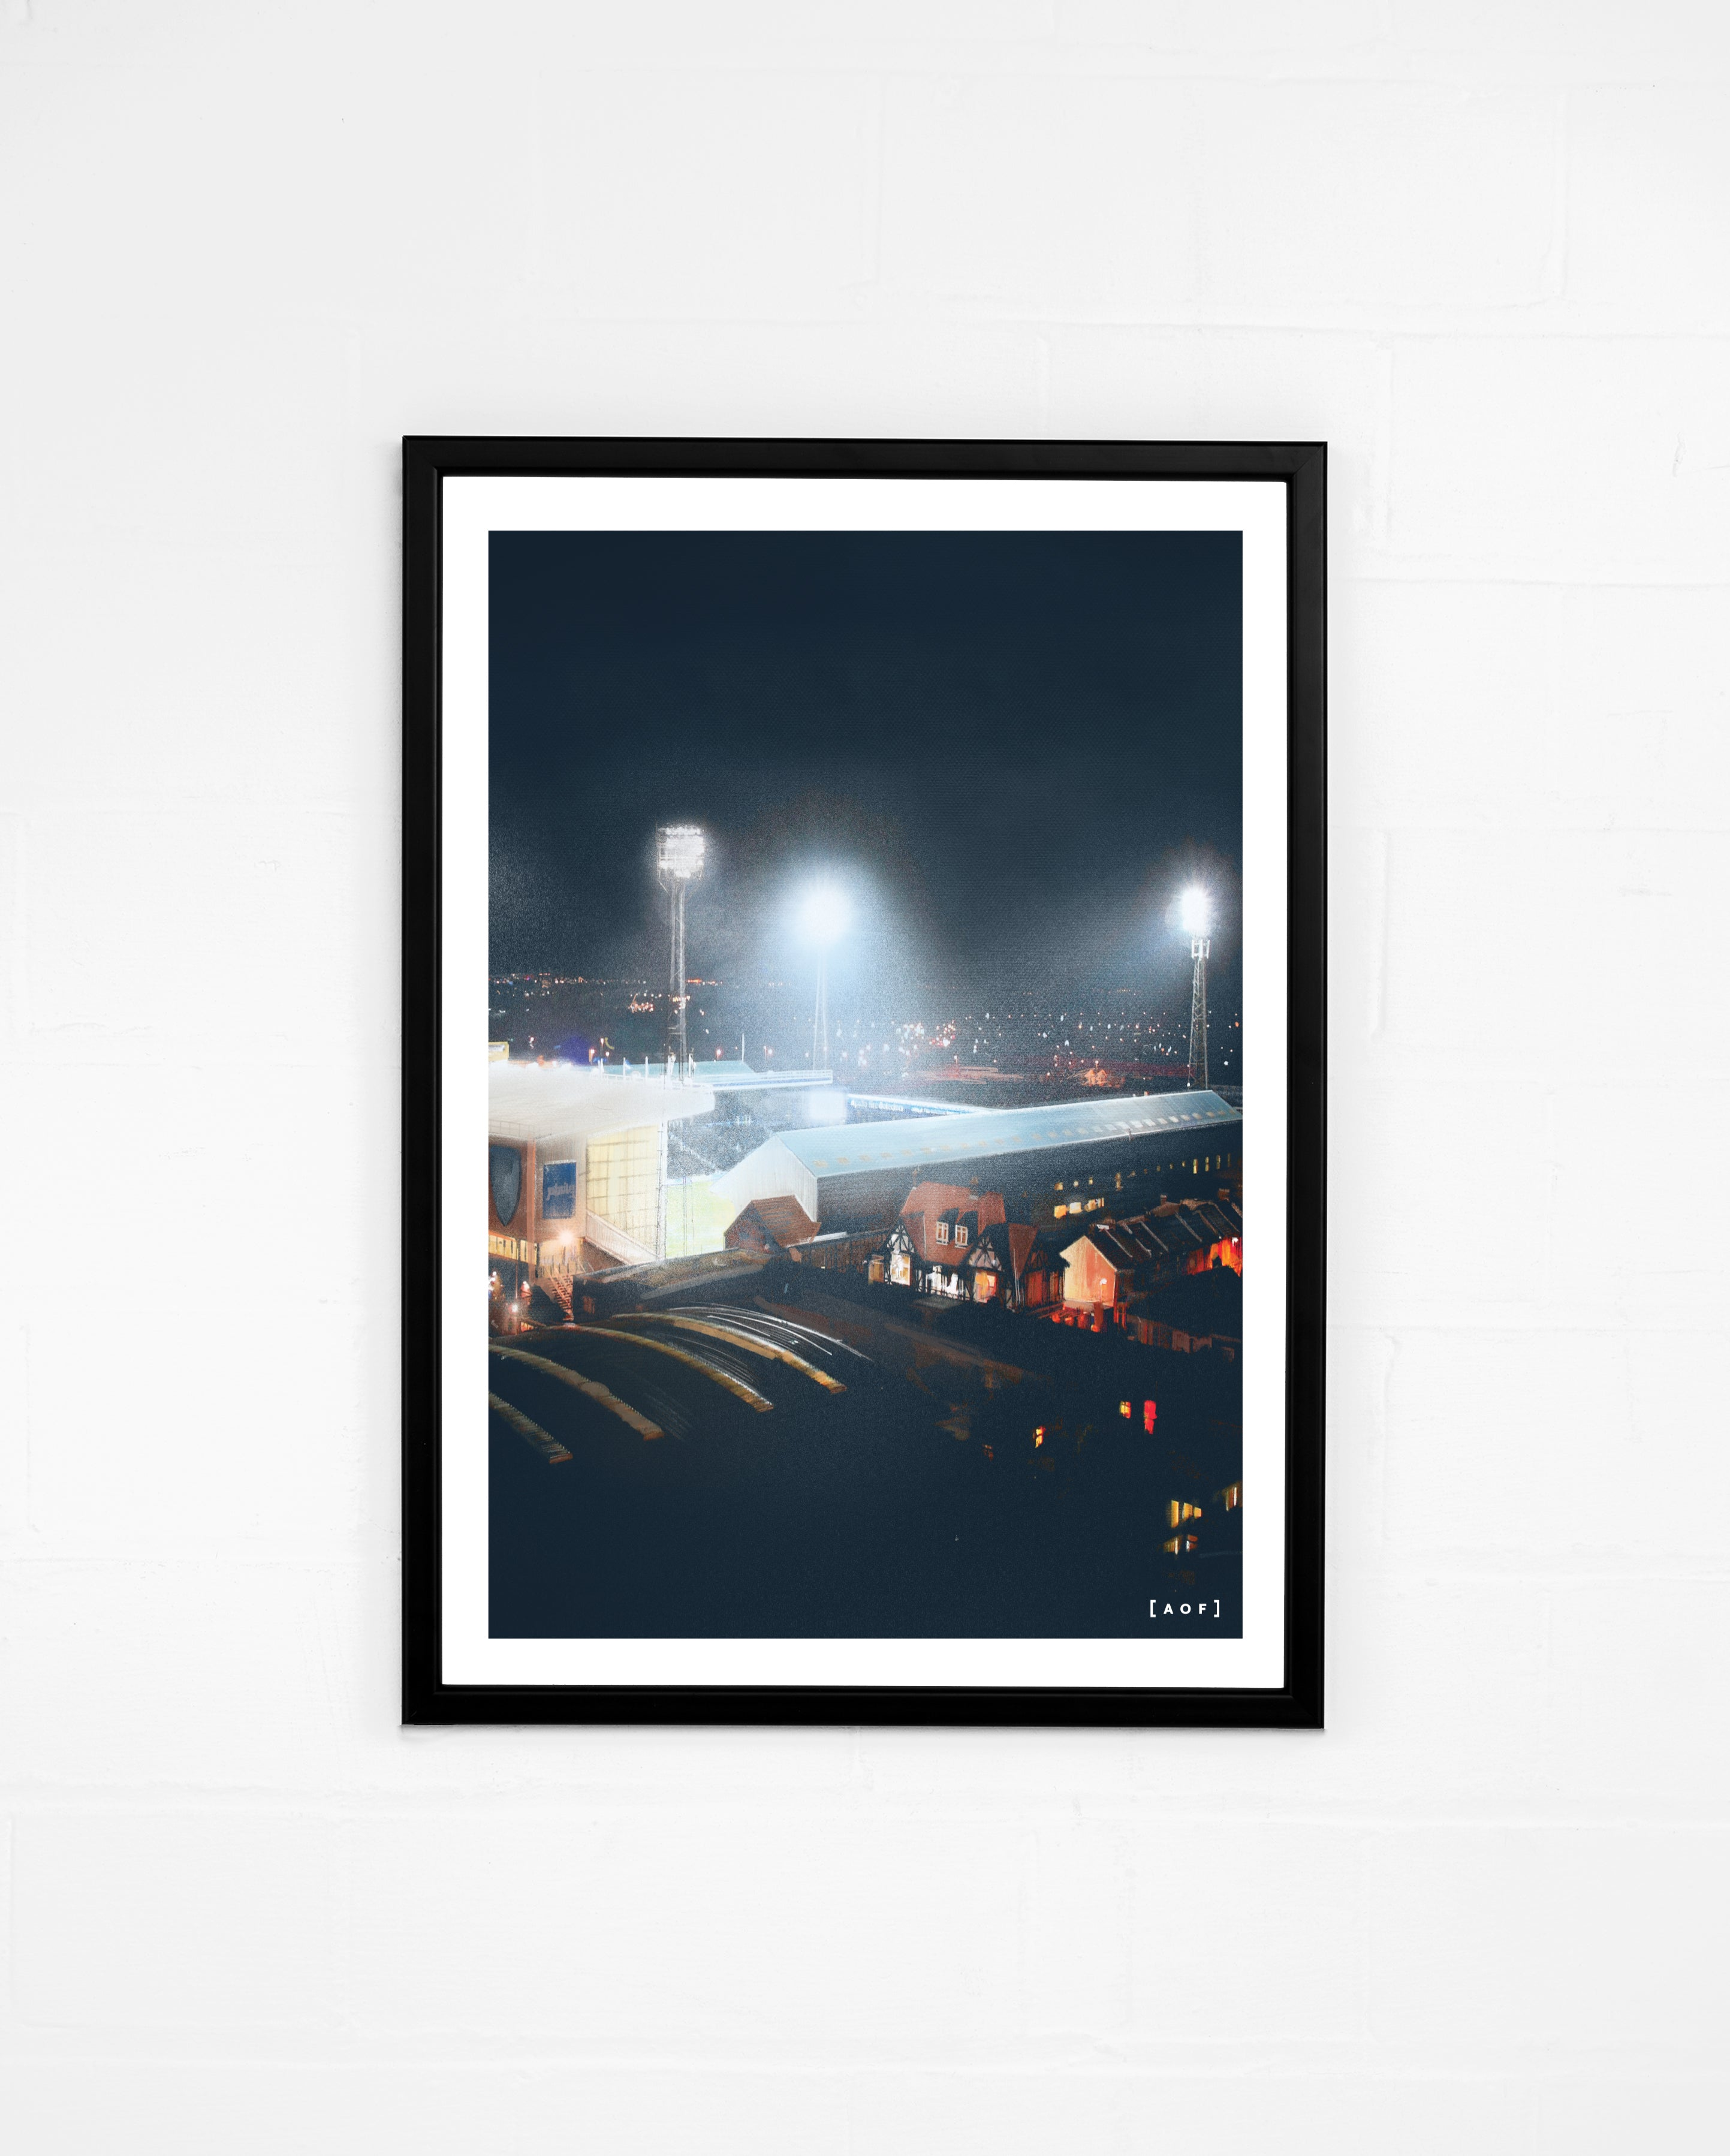 Fratton Park by Night - Print or Canvas